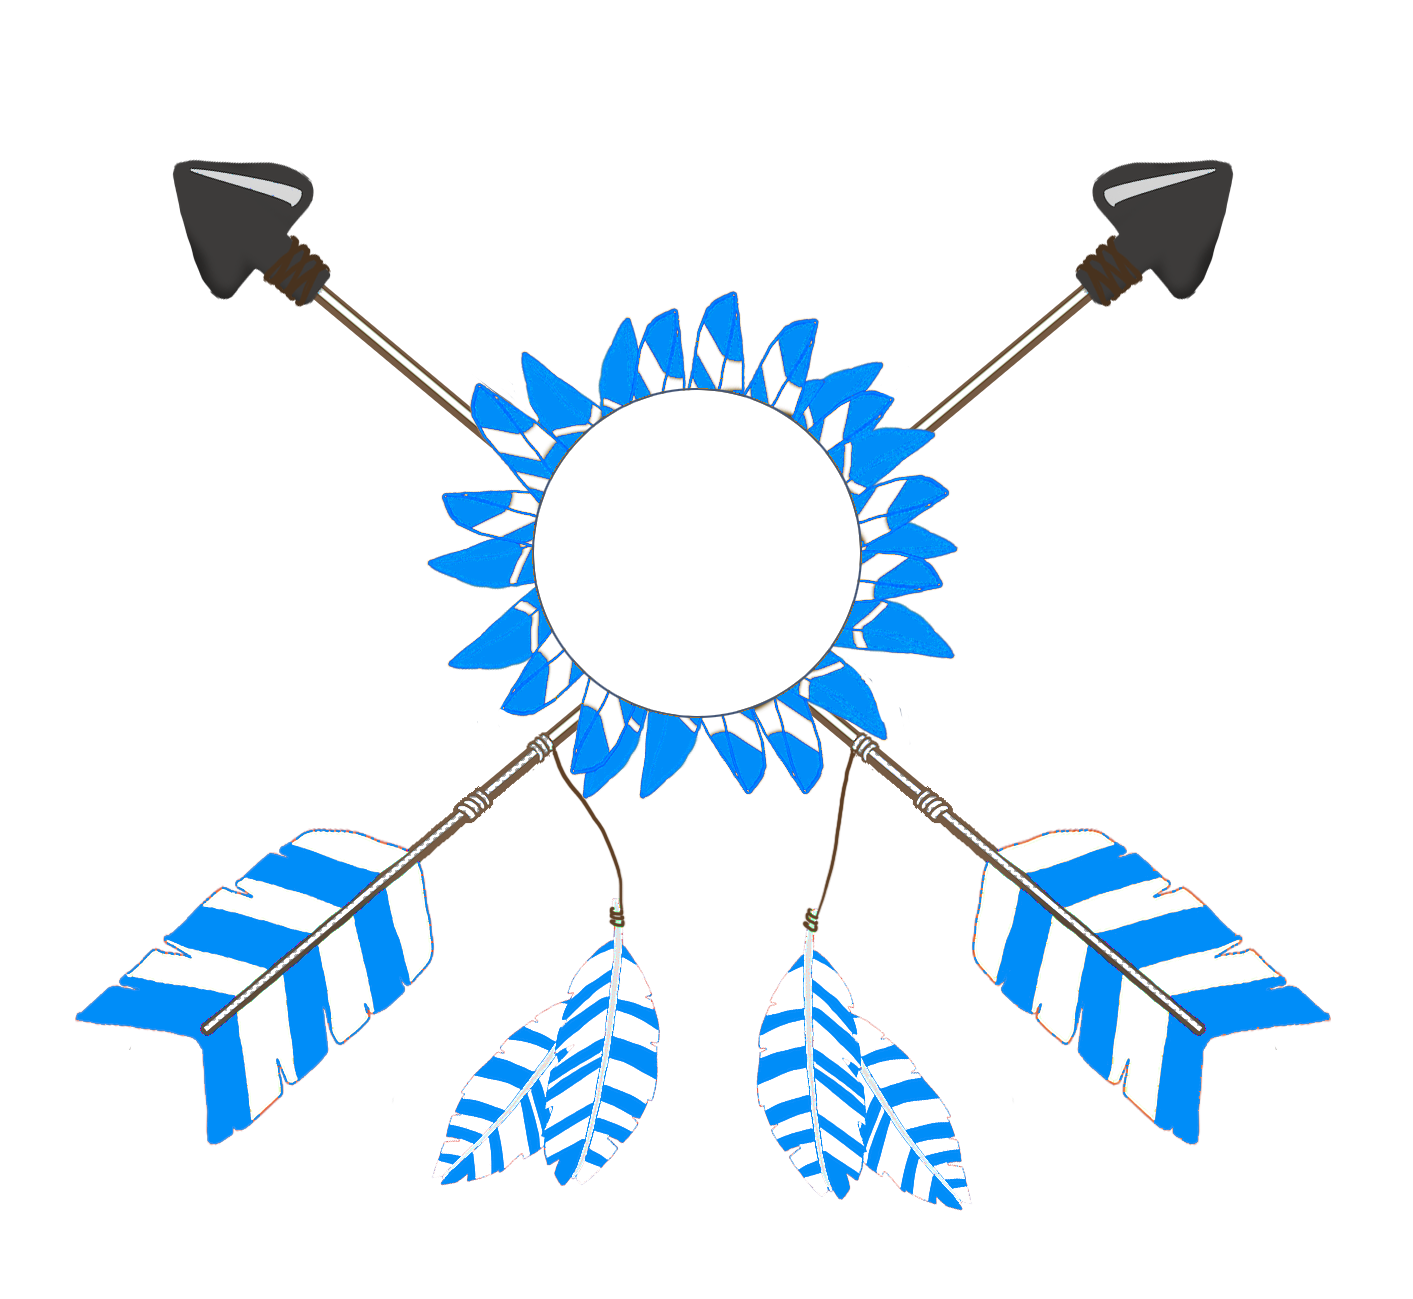 Feathers clipart tribal arrow. All kinds of crossed